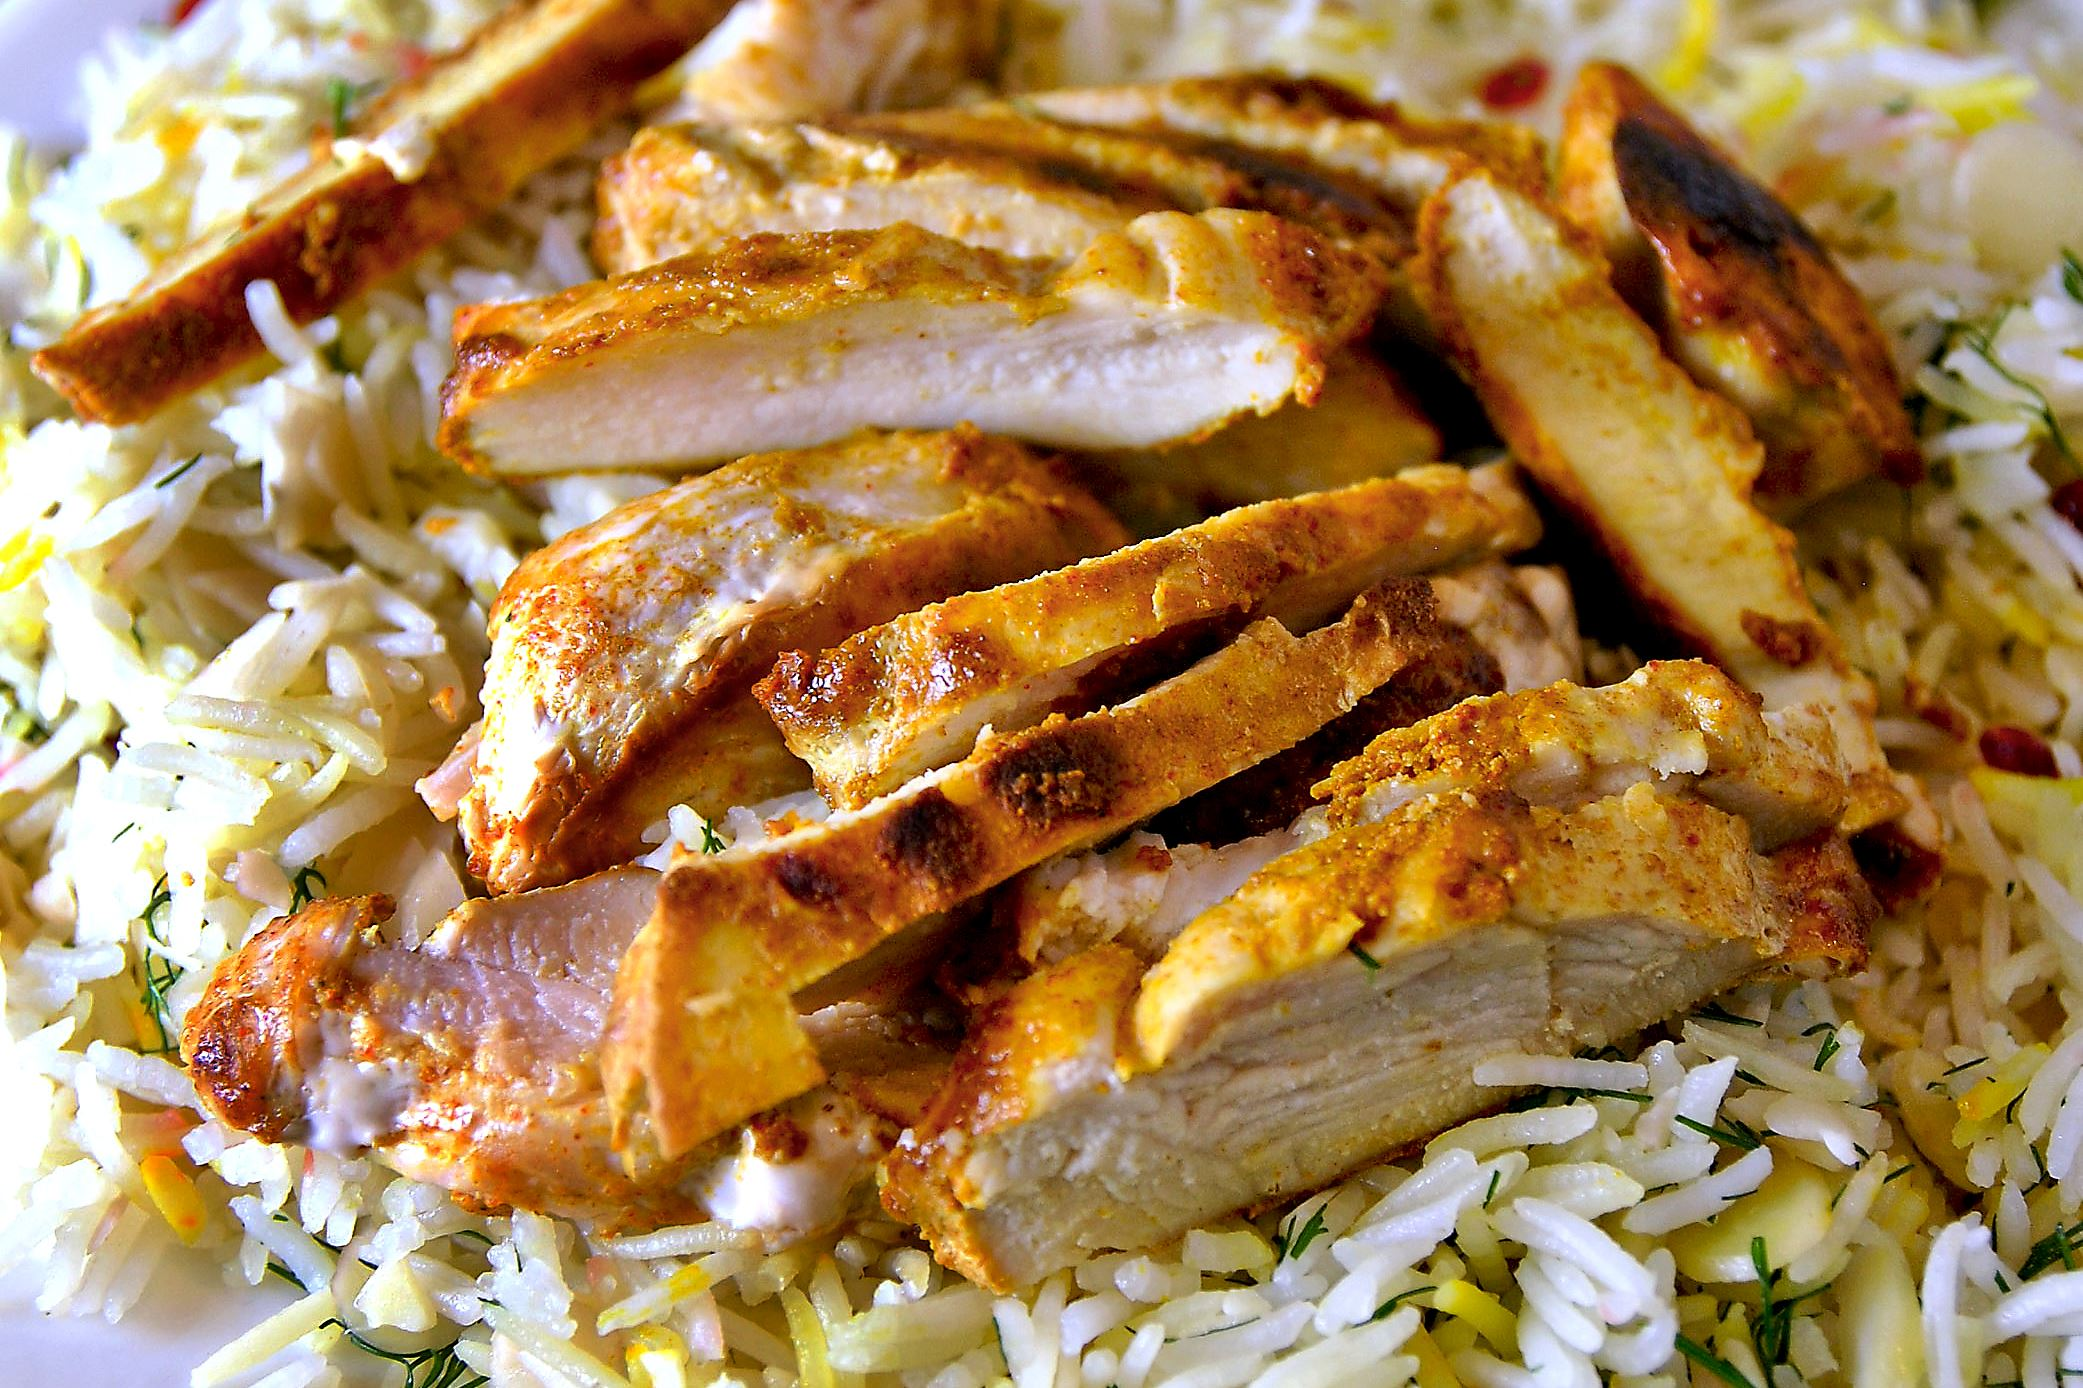 dinnerinabox0309-curry-chicken-3 Peach Dish's Curry-Spiced Chicken.